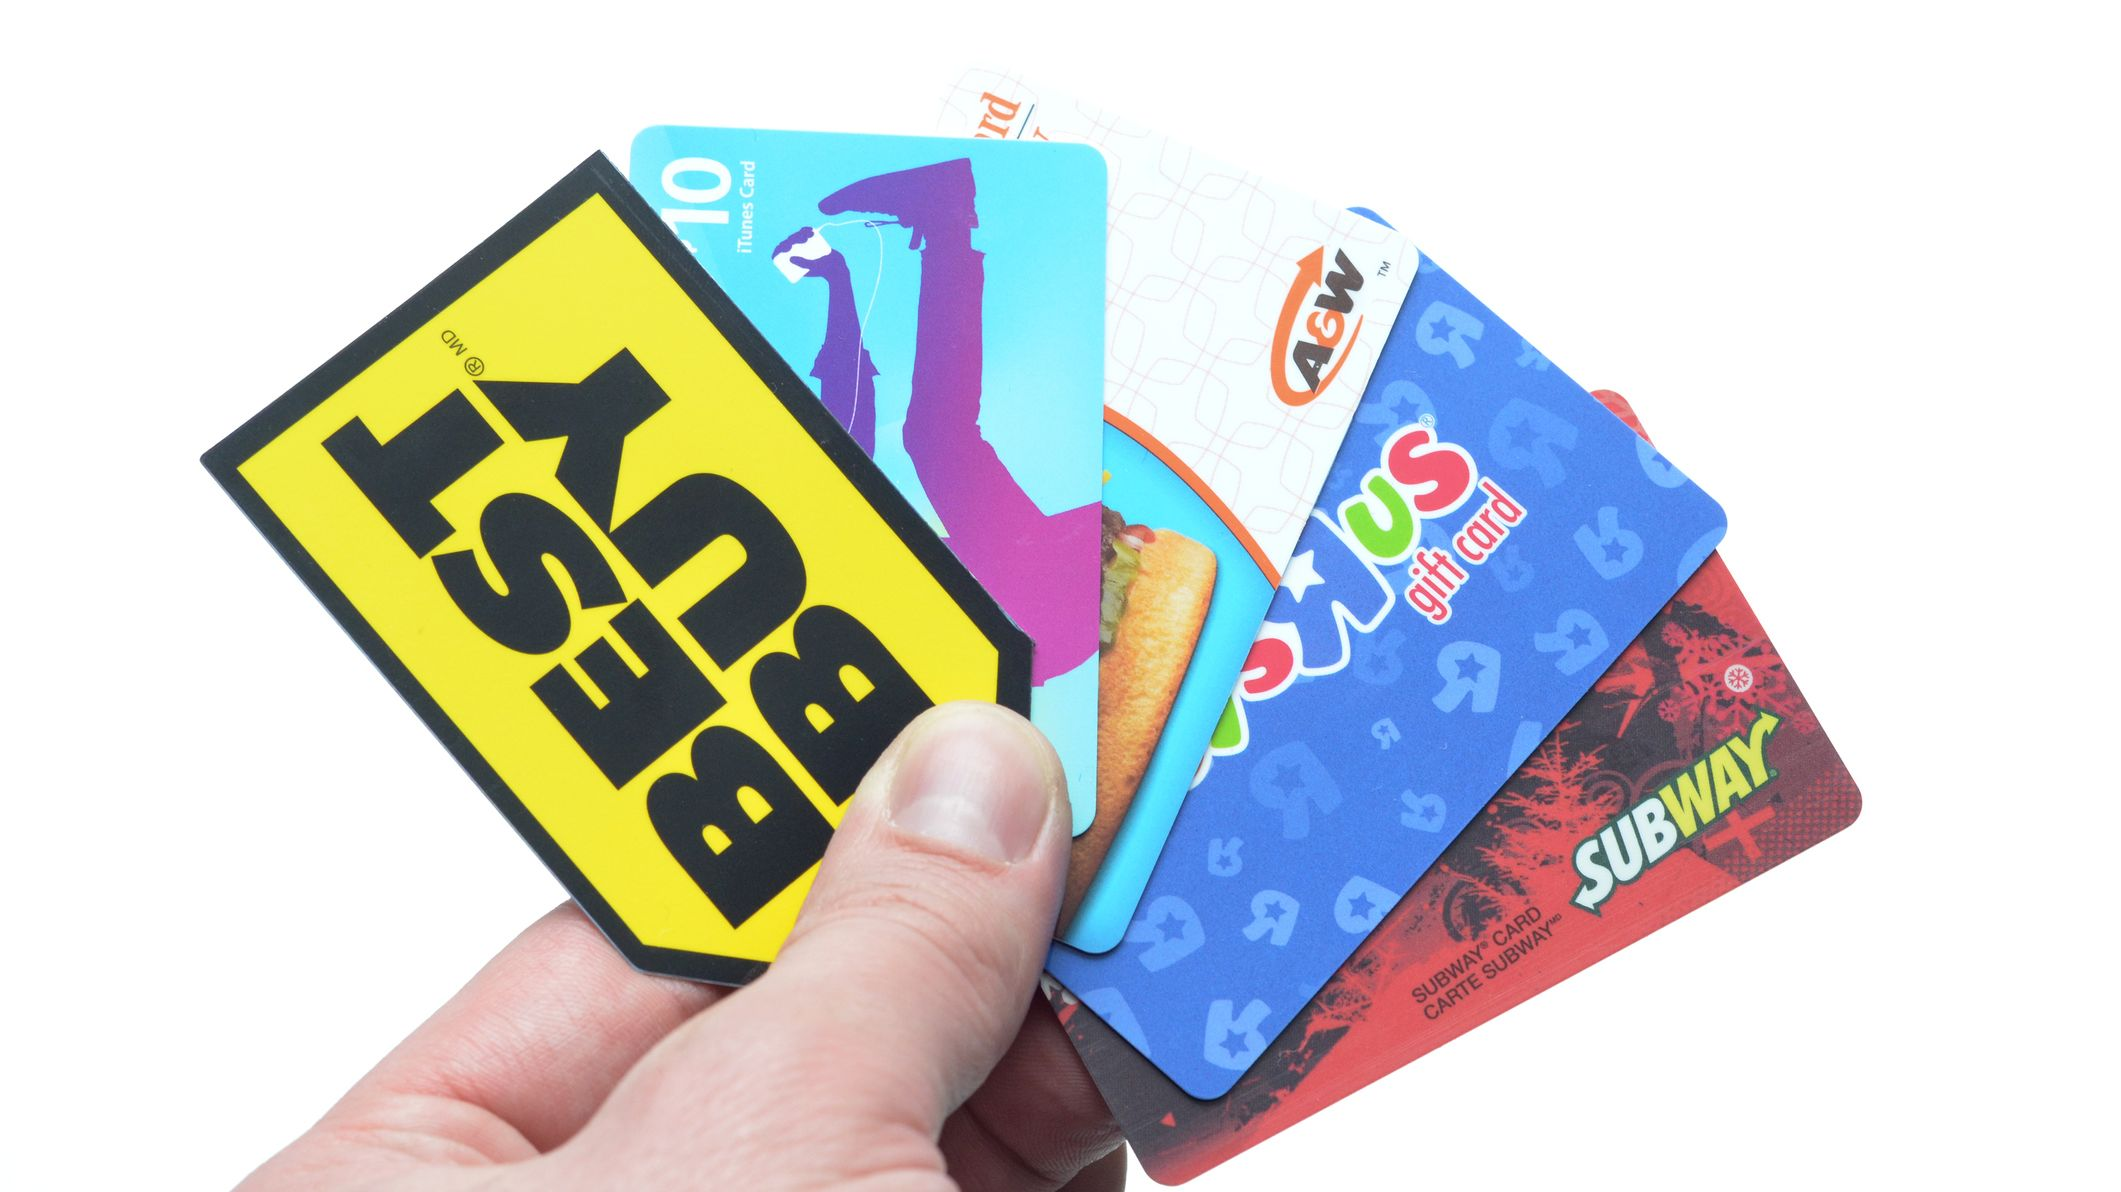 How to Sell, Trade, or Donate Those Gift Cards You'll Never Use   Mental Floss